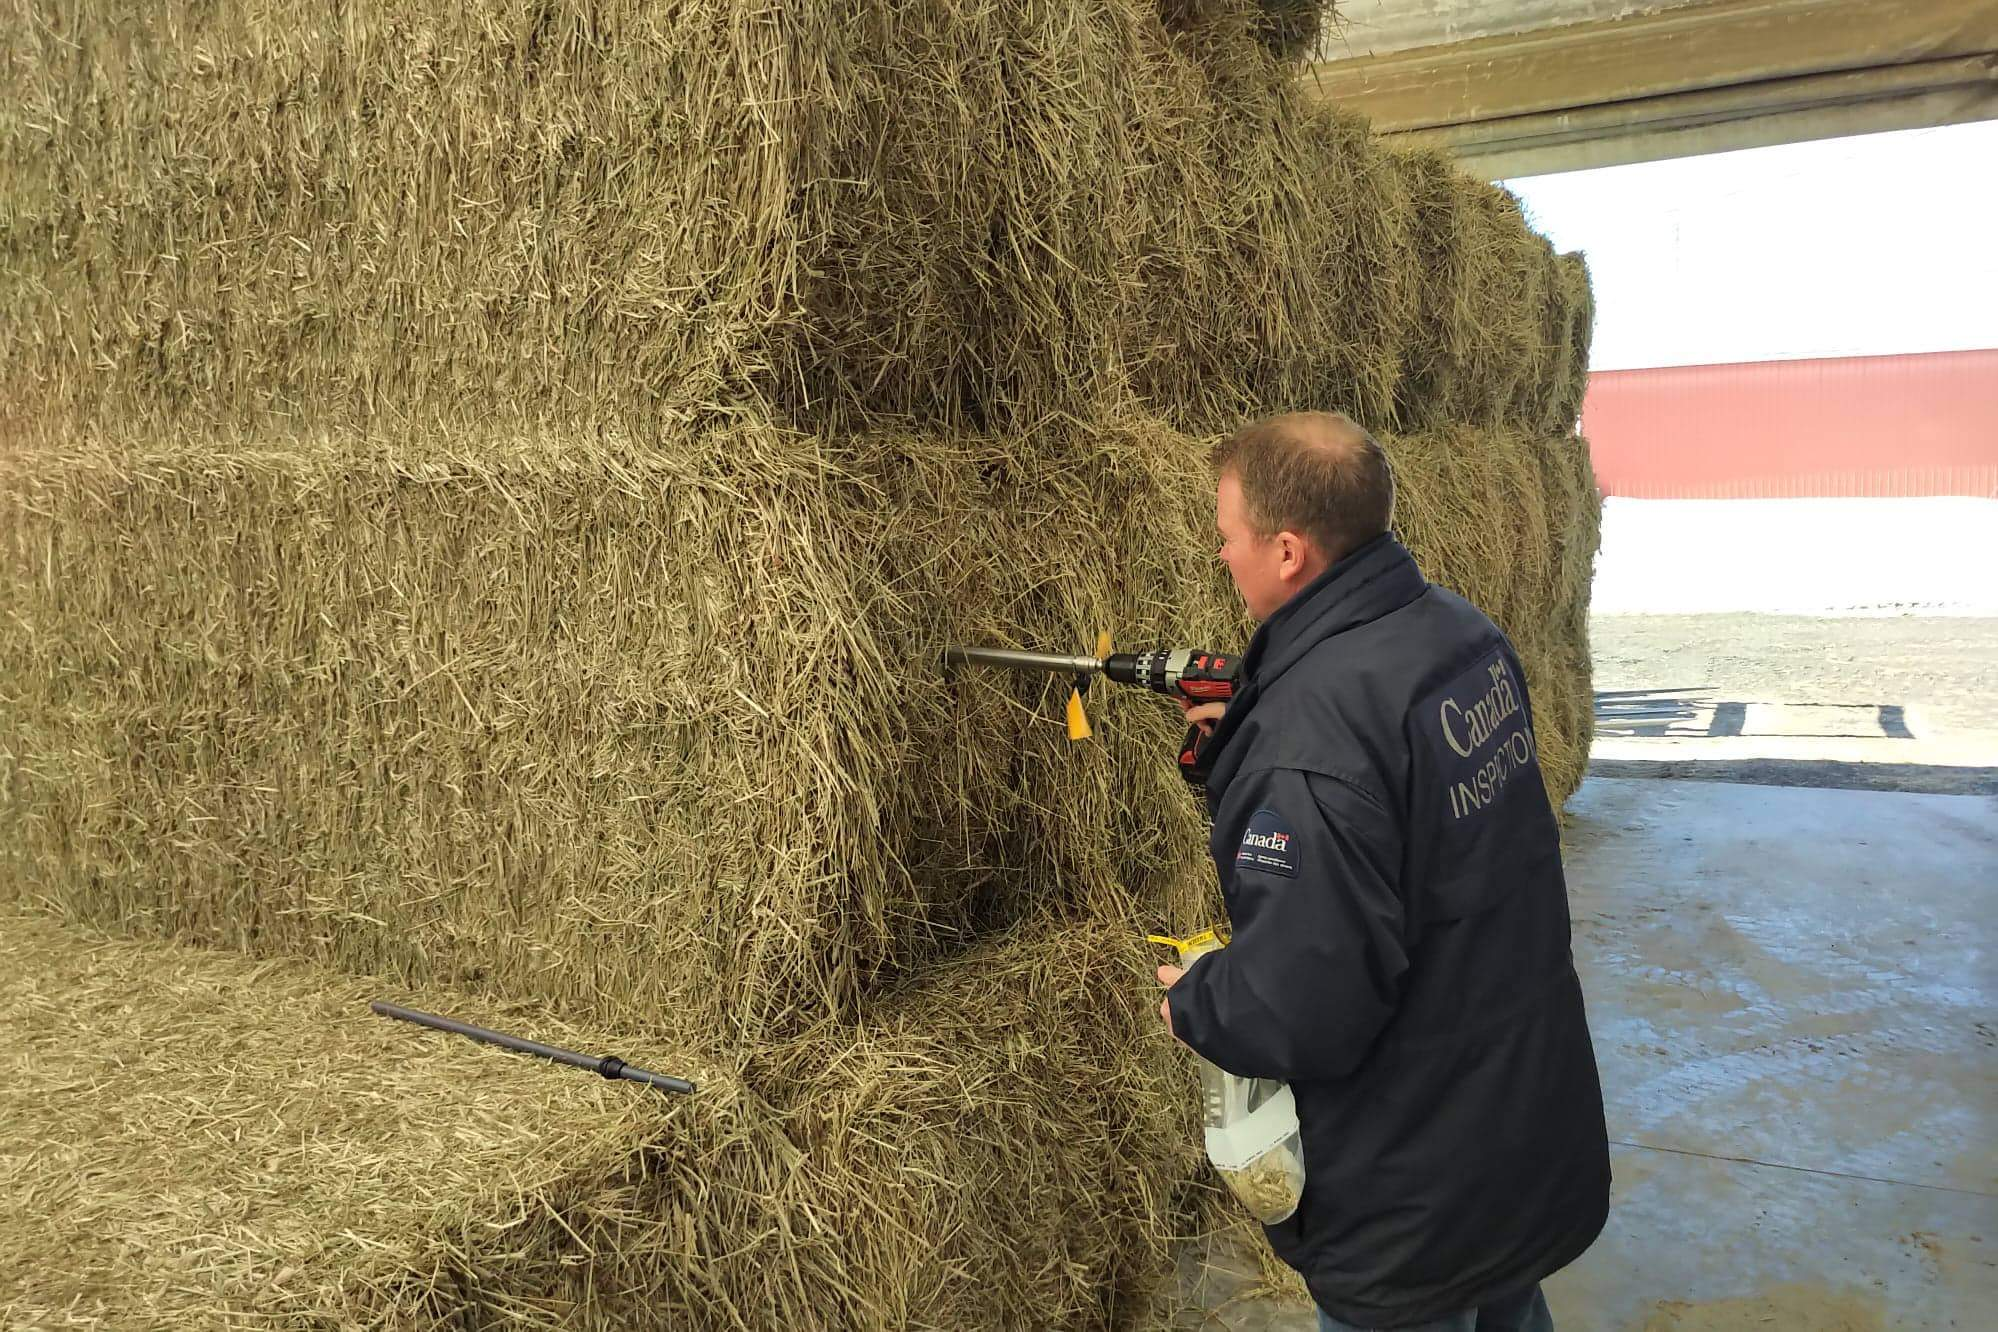 Canadian federal inspector using a drill to inspect a hay sample for export